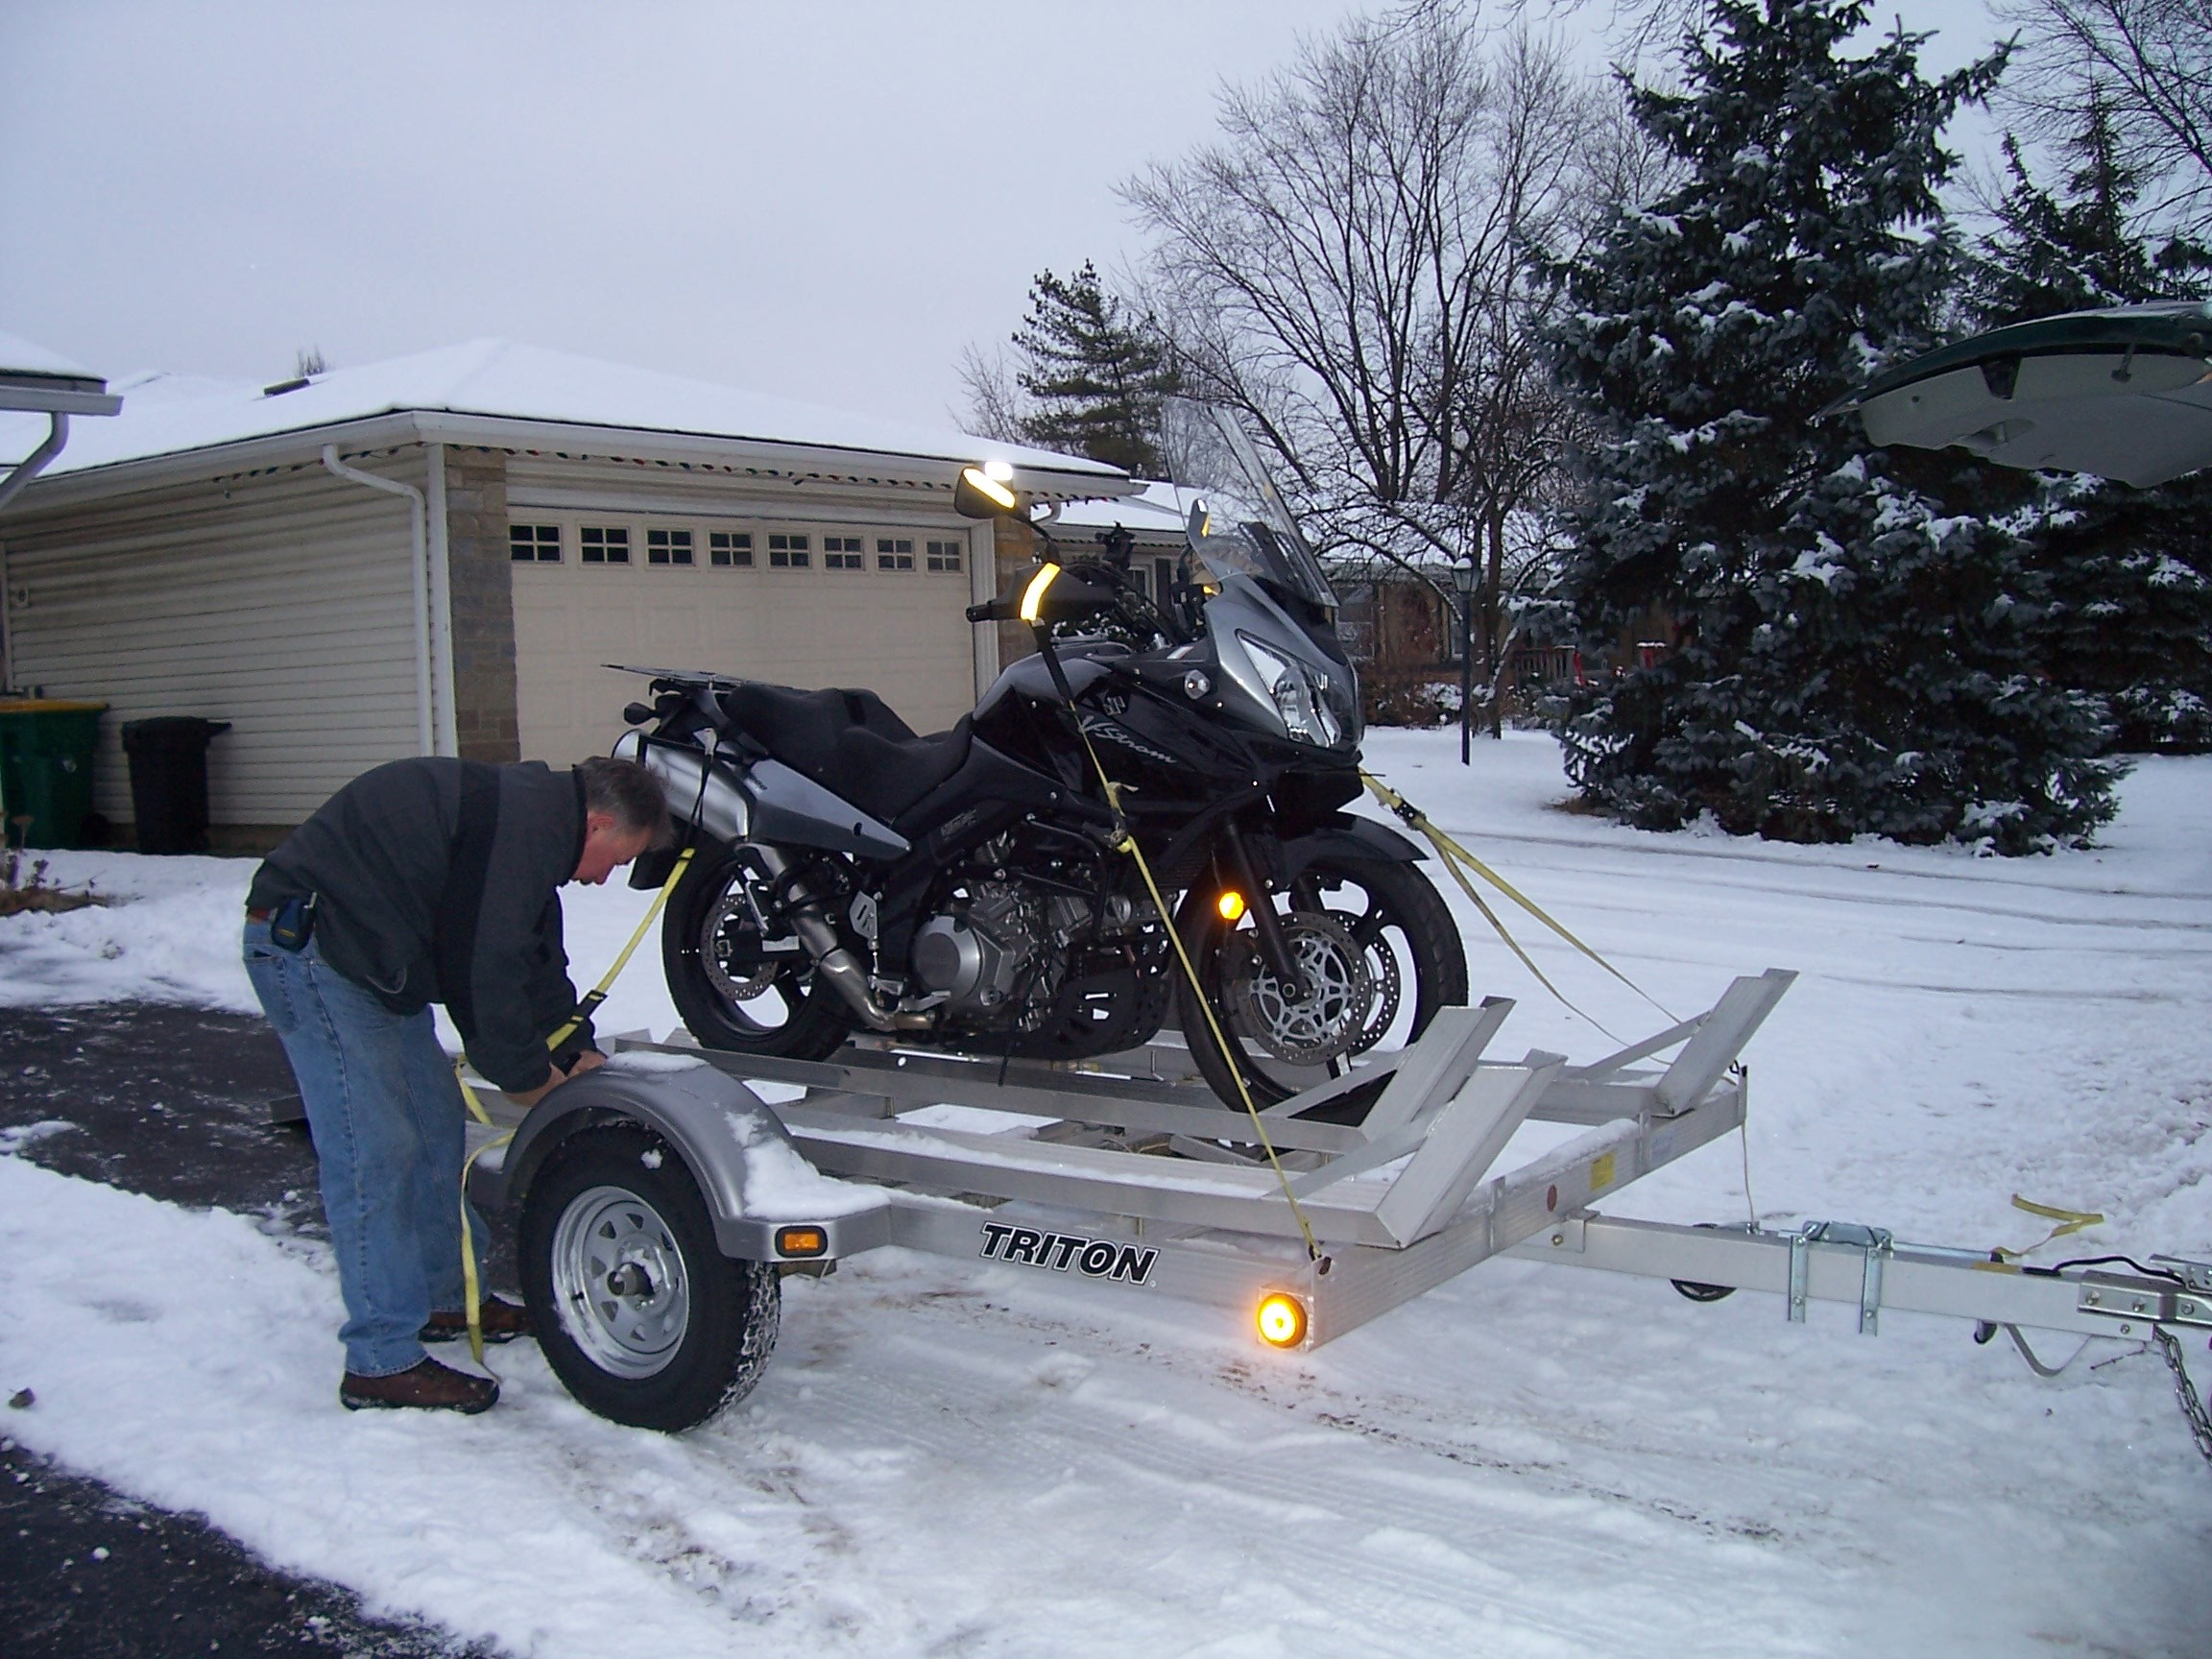 Loading up to get out of the snow.